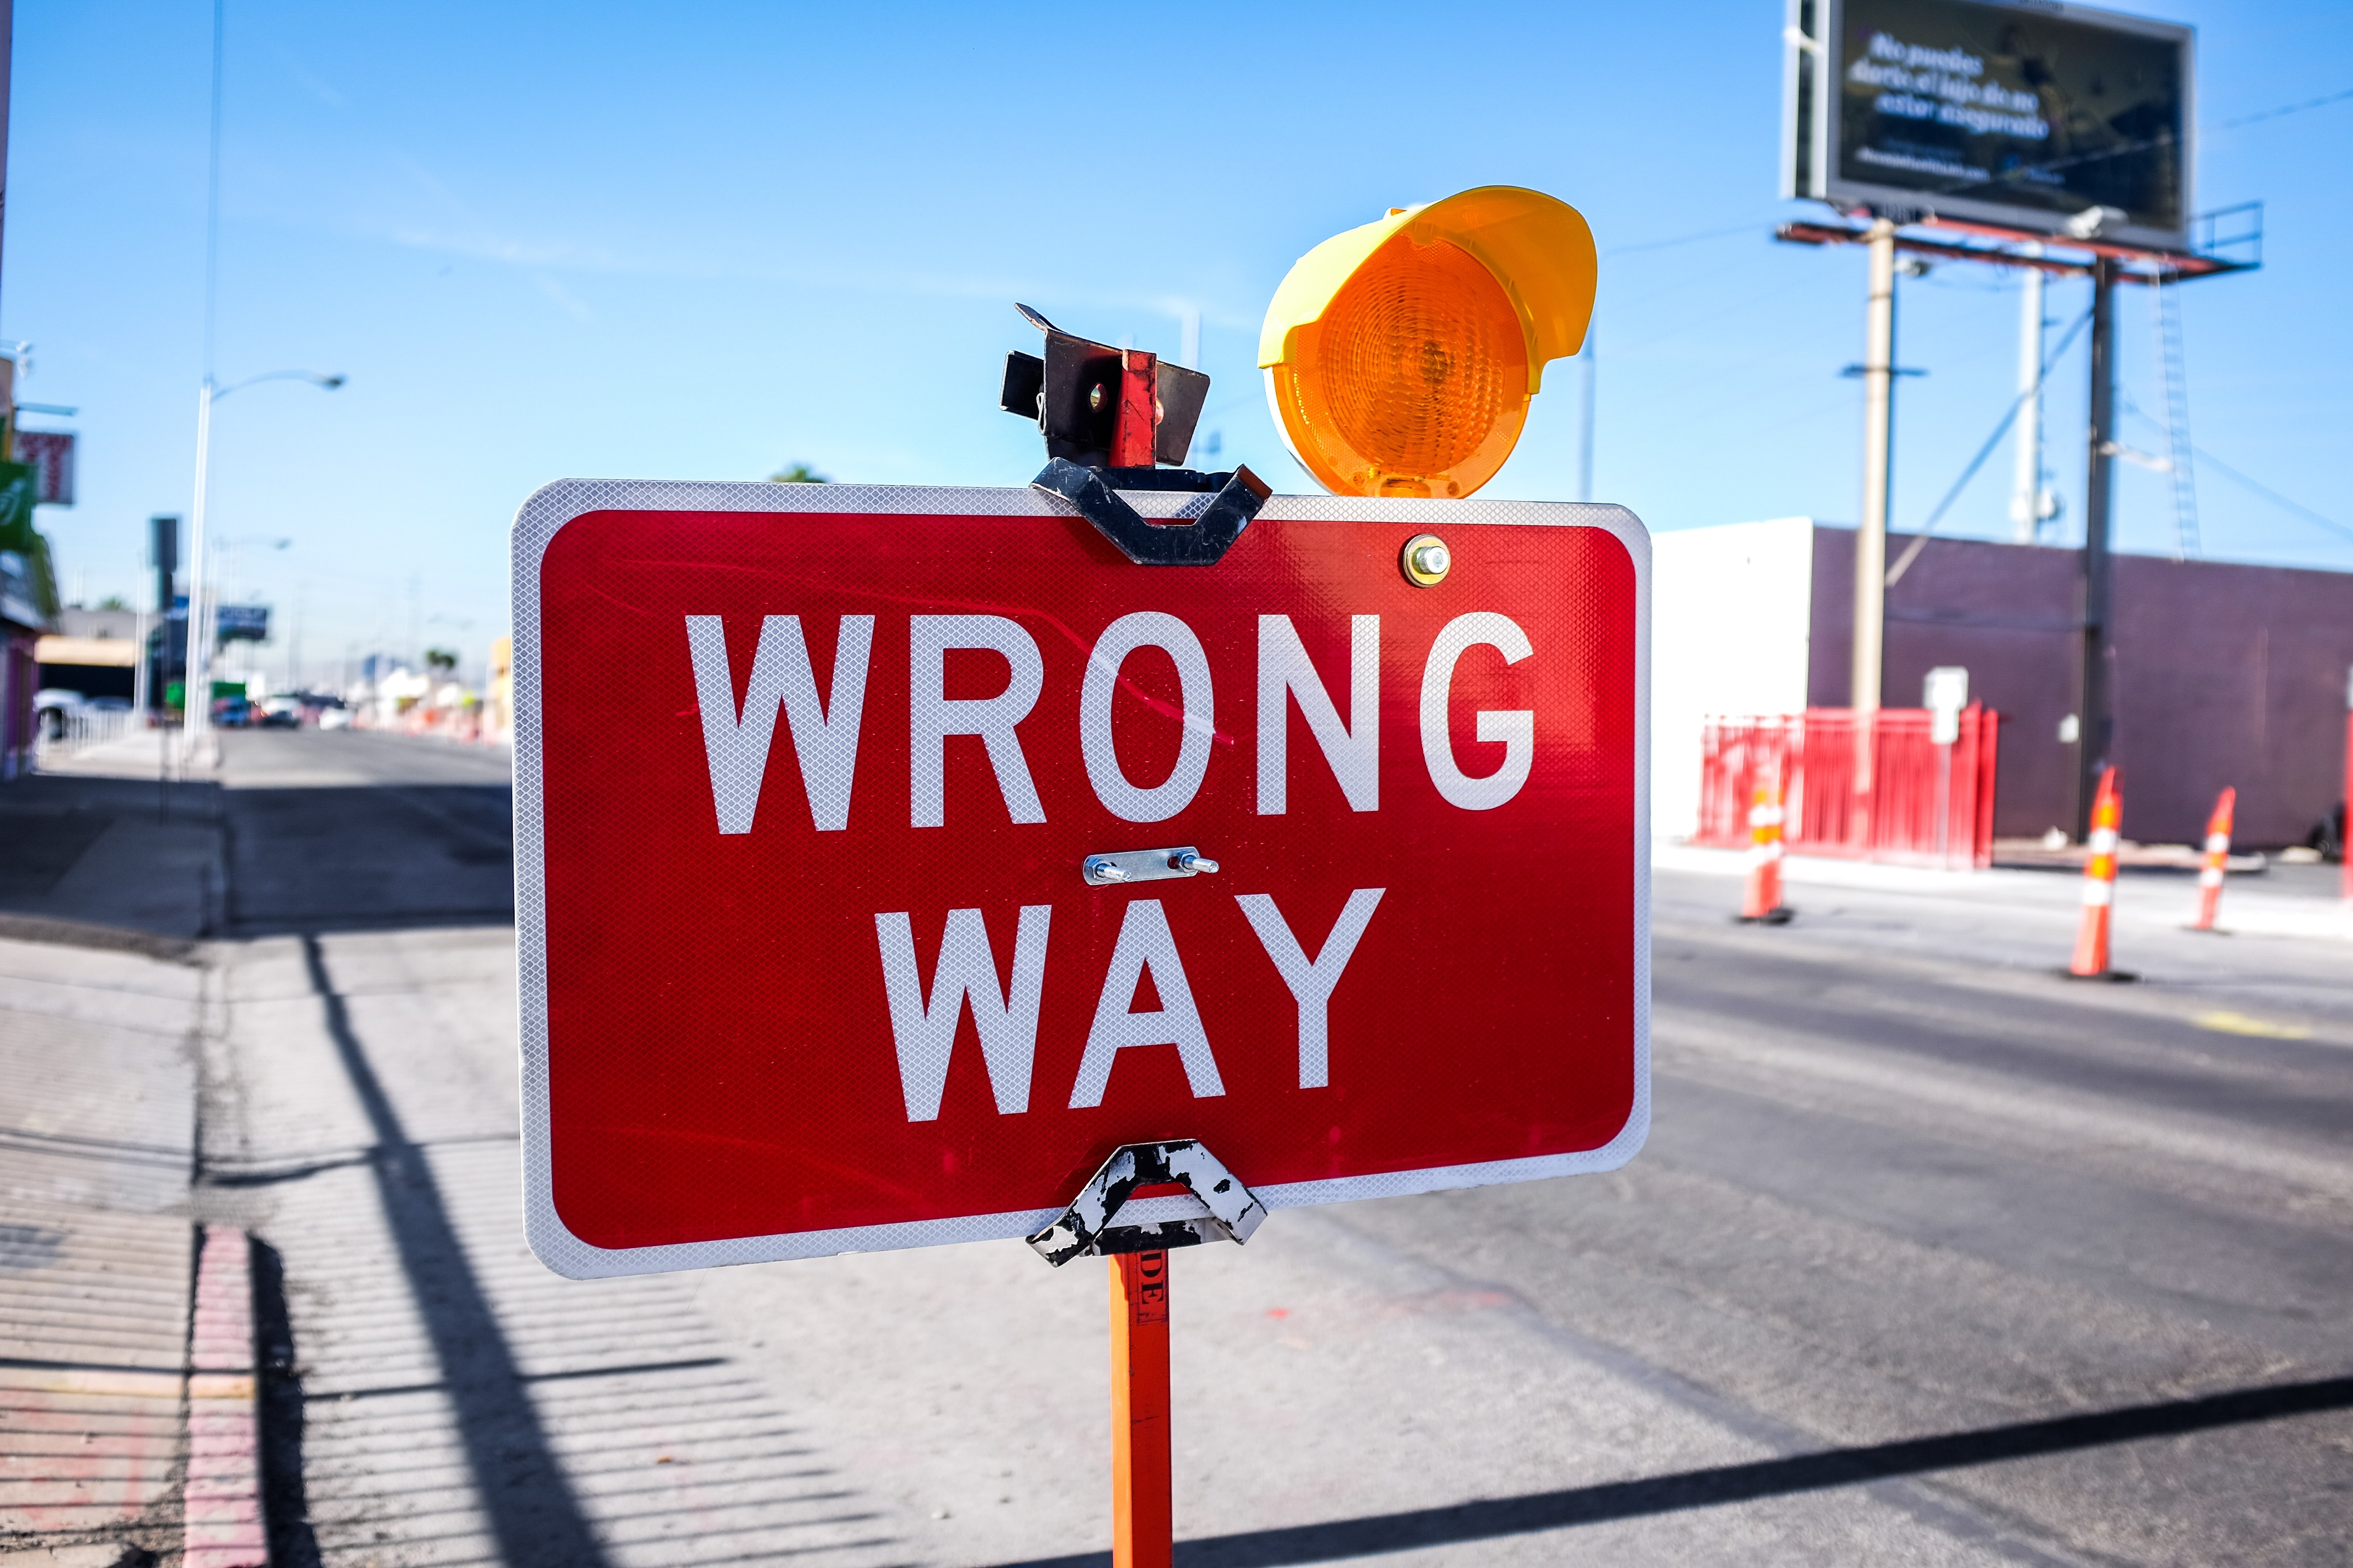 A sign saying 'Wrong Way' so Malky McEwan could add a little pun pointing to the 'write' way.